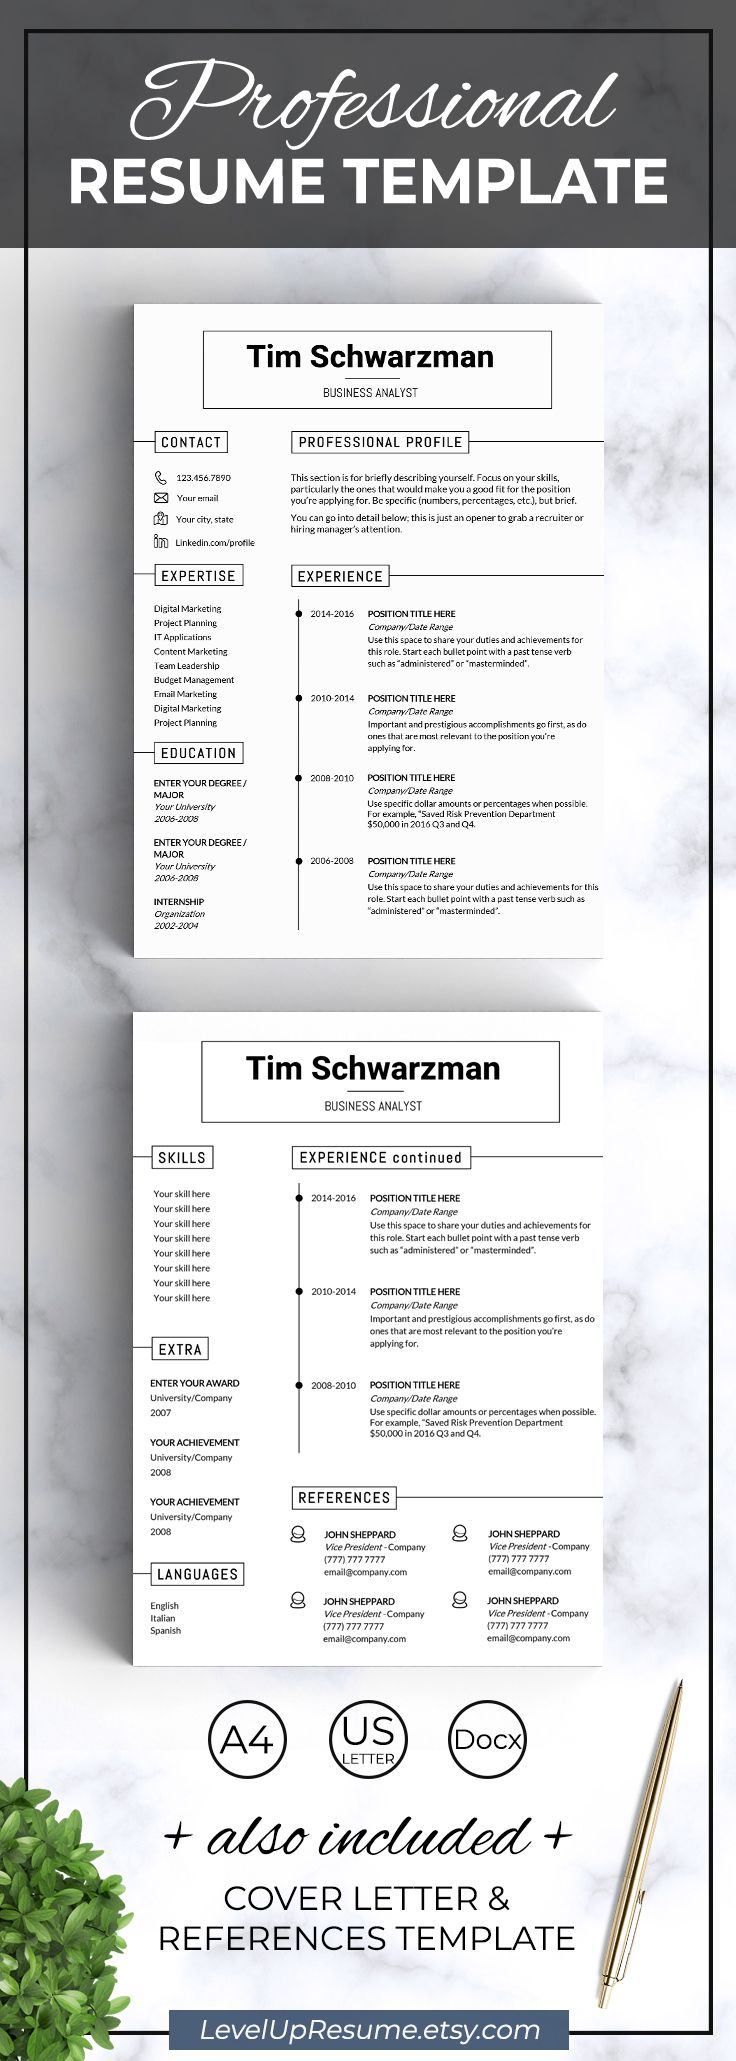 Resume Template Modern Resume Templates Creative Resume